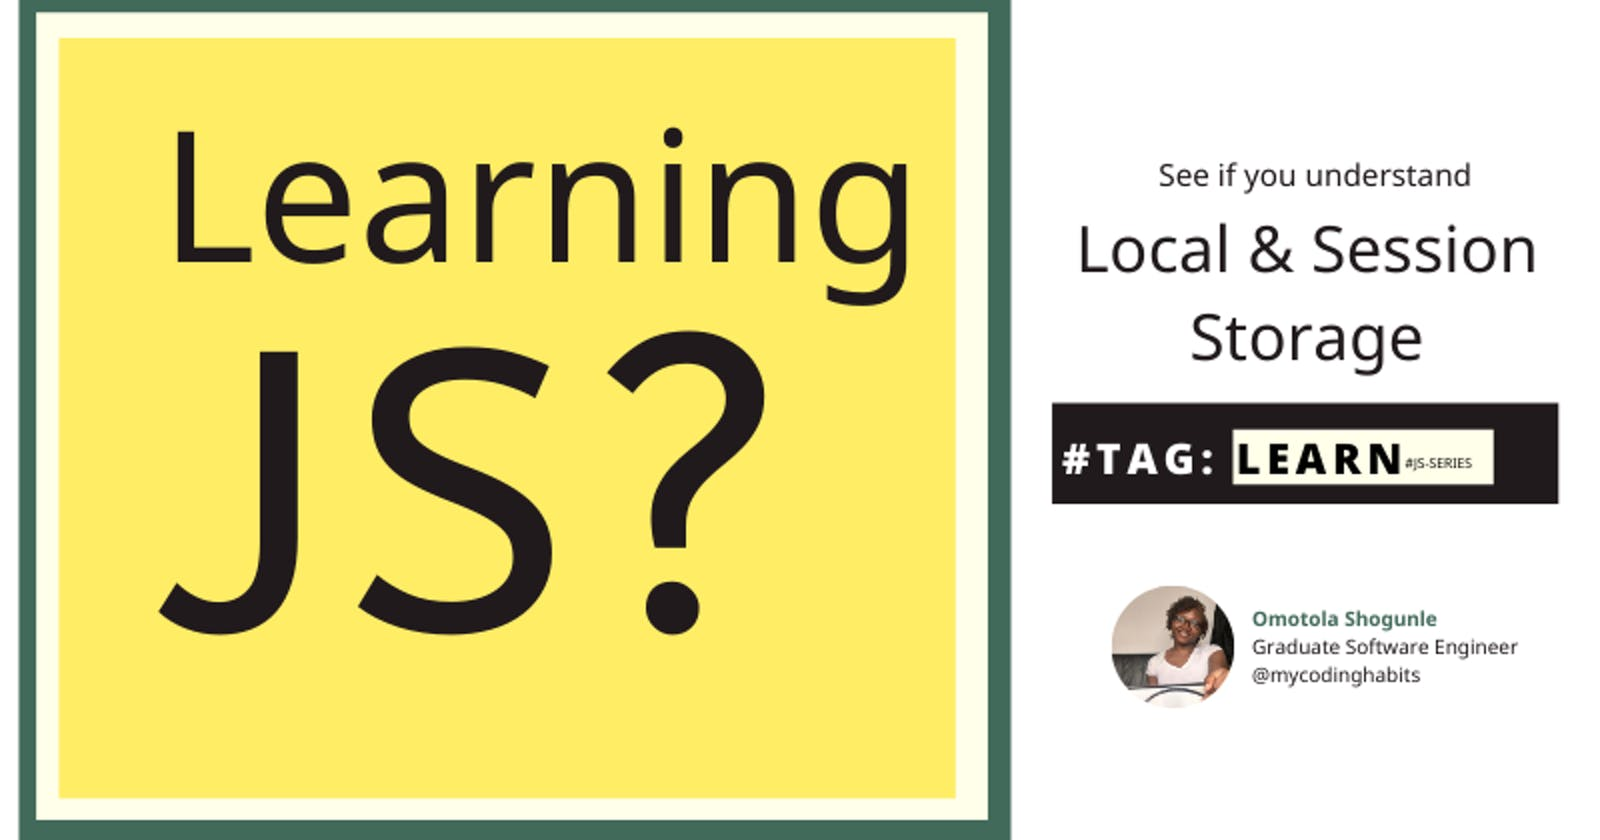 Learning JavaScript? Topic - Local & Session Storage